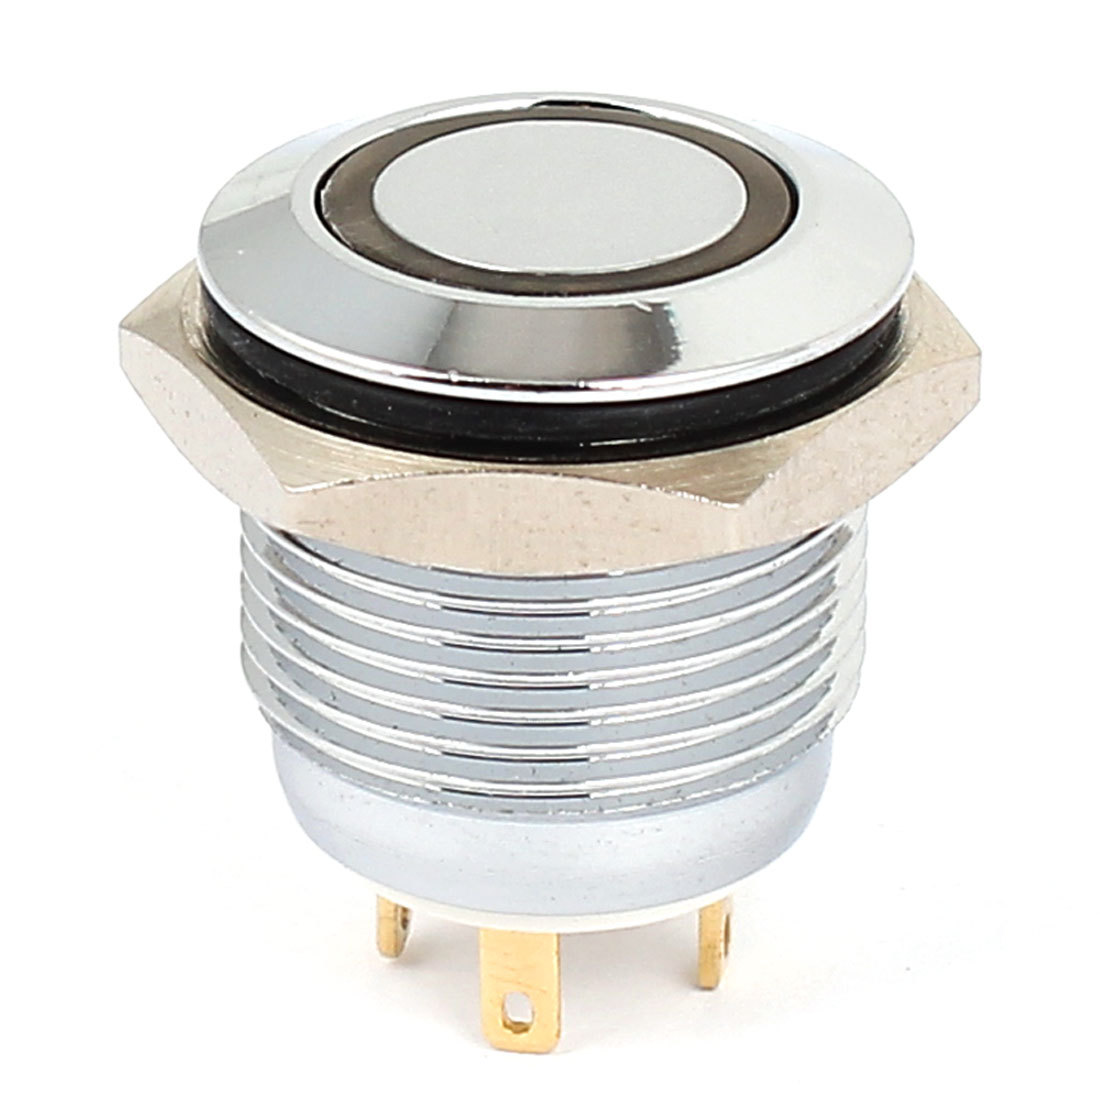 3V 16mm Dia White LED Lamp Chromium Plated Brass Momentary Pushbutton Switch